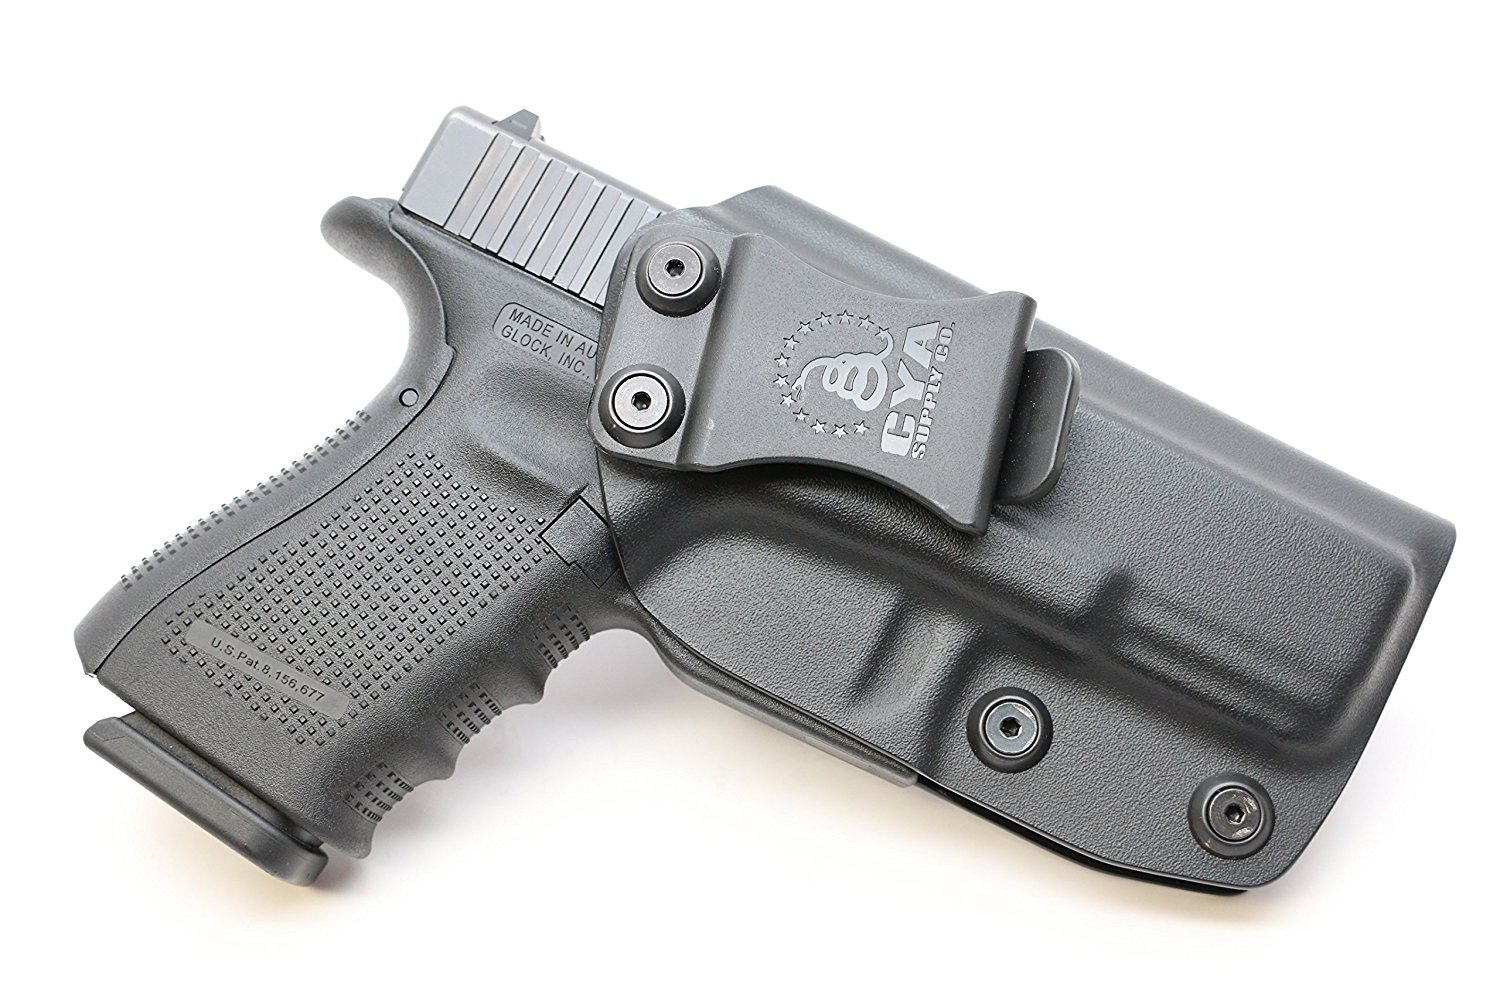 CYA Supply Co. IWB Holster Fits: Glock 19 / Glock 23 / Glock 32